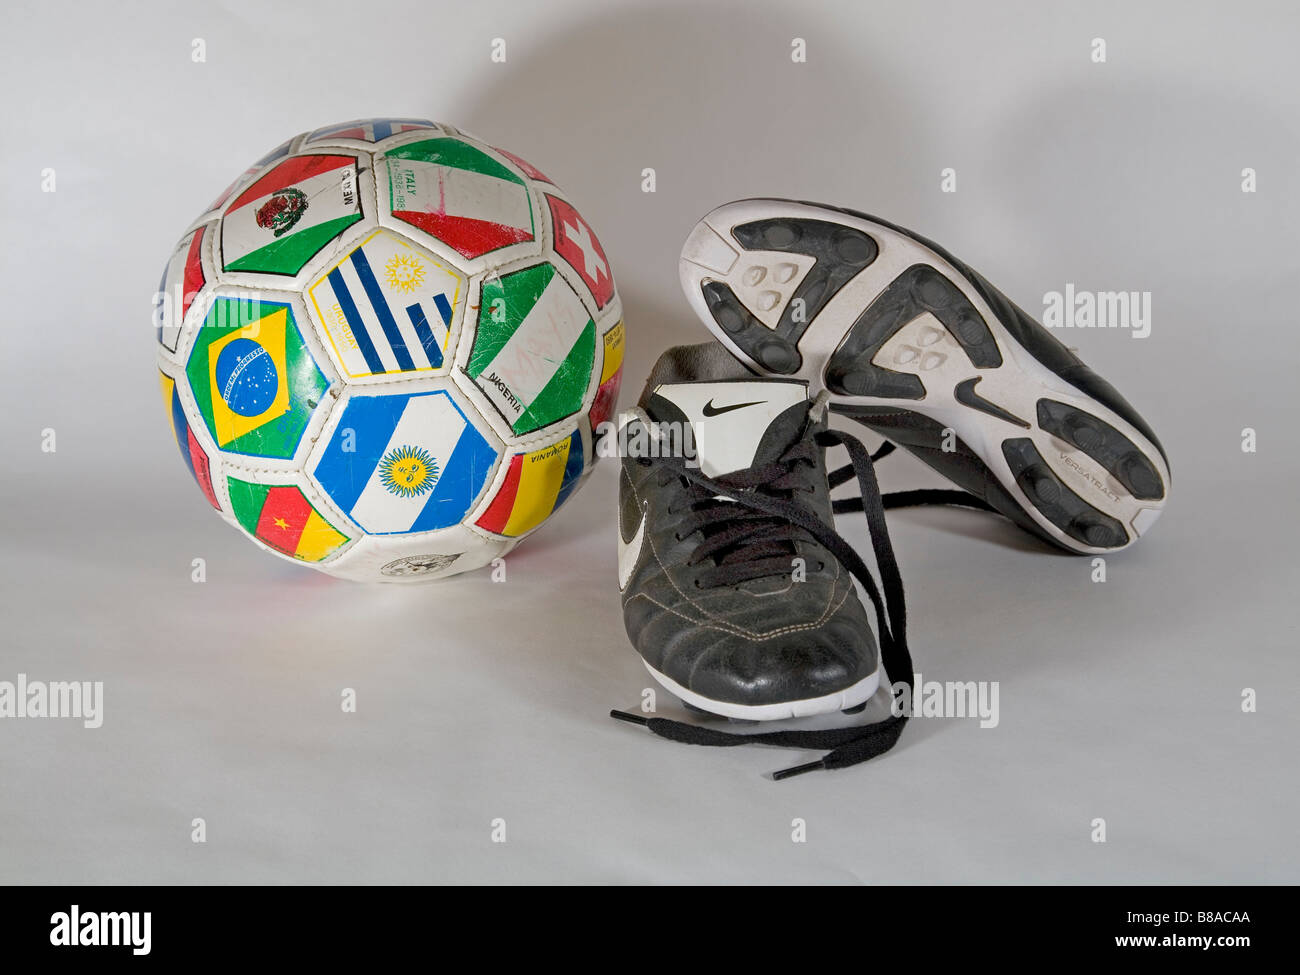 Old very used soccer football shoes and a soccer ball - Stock Image